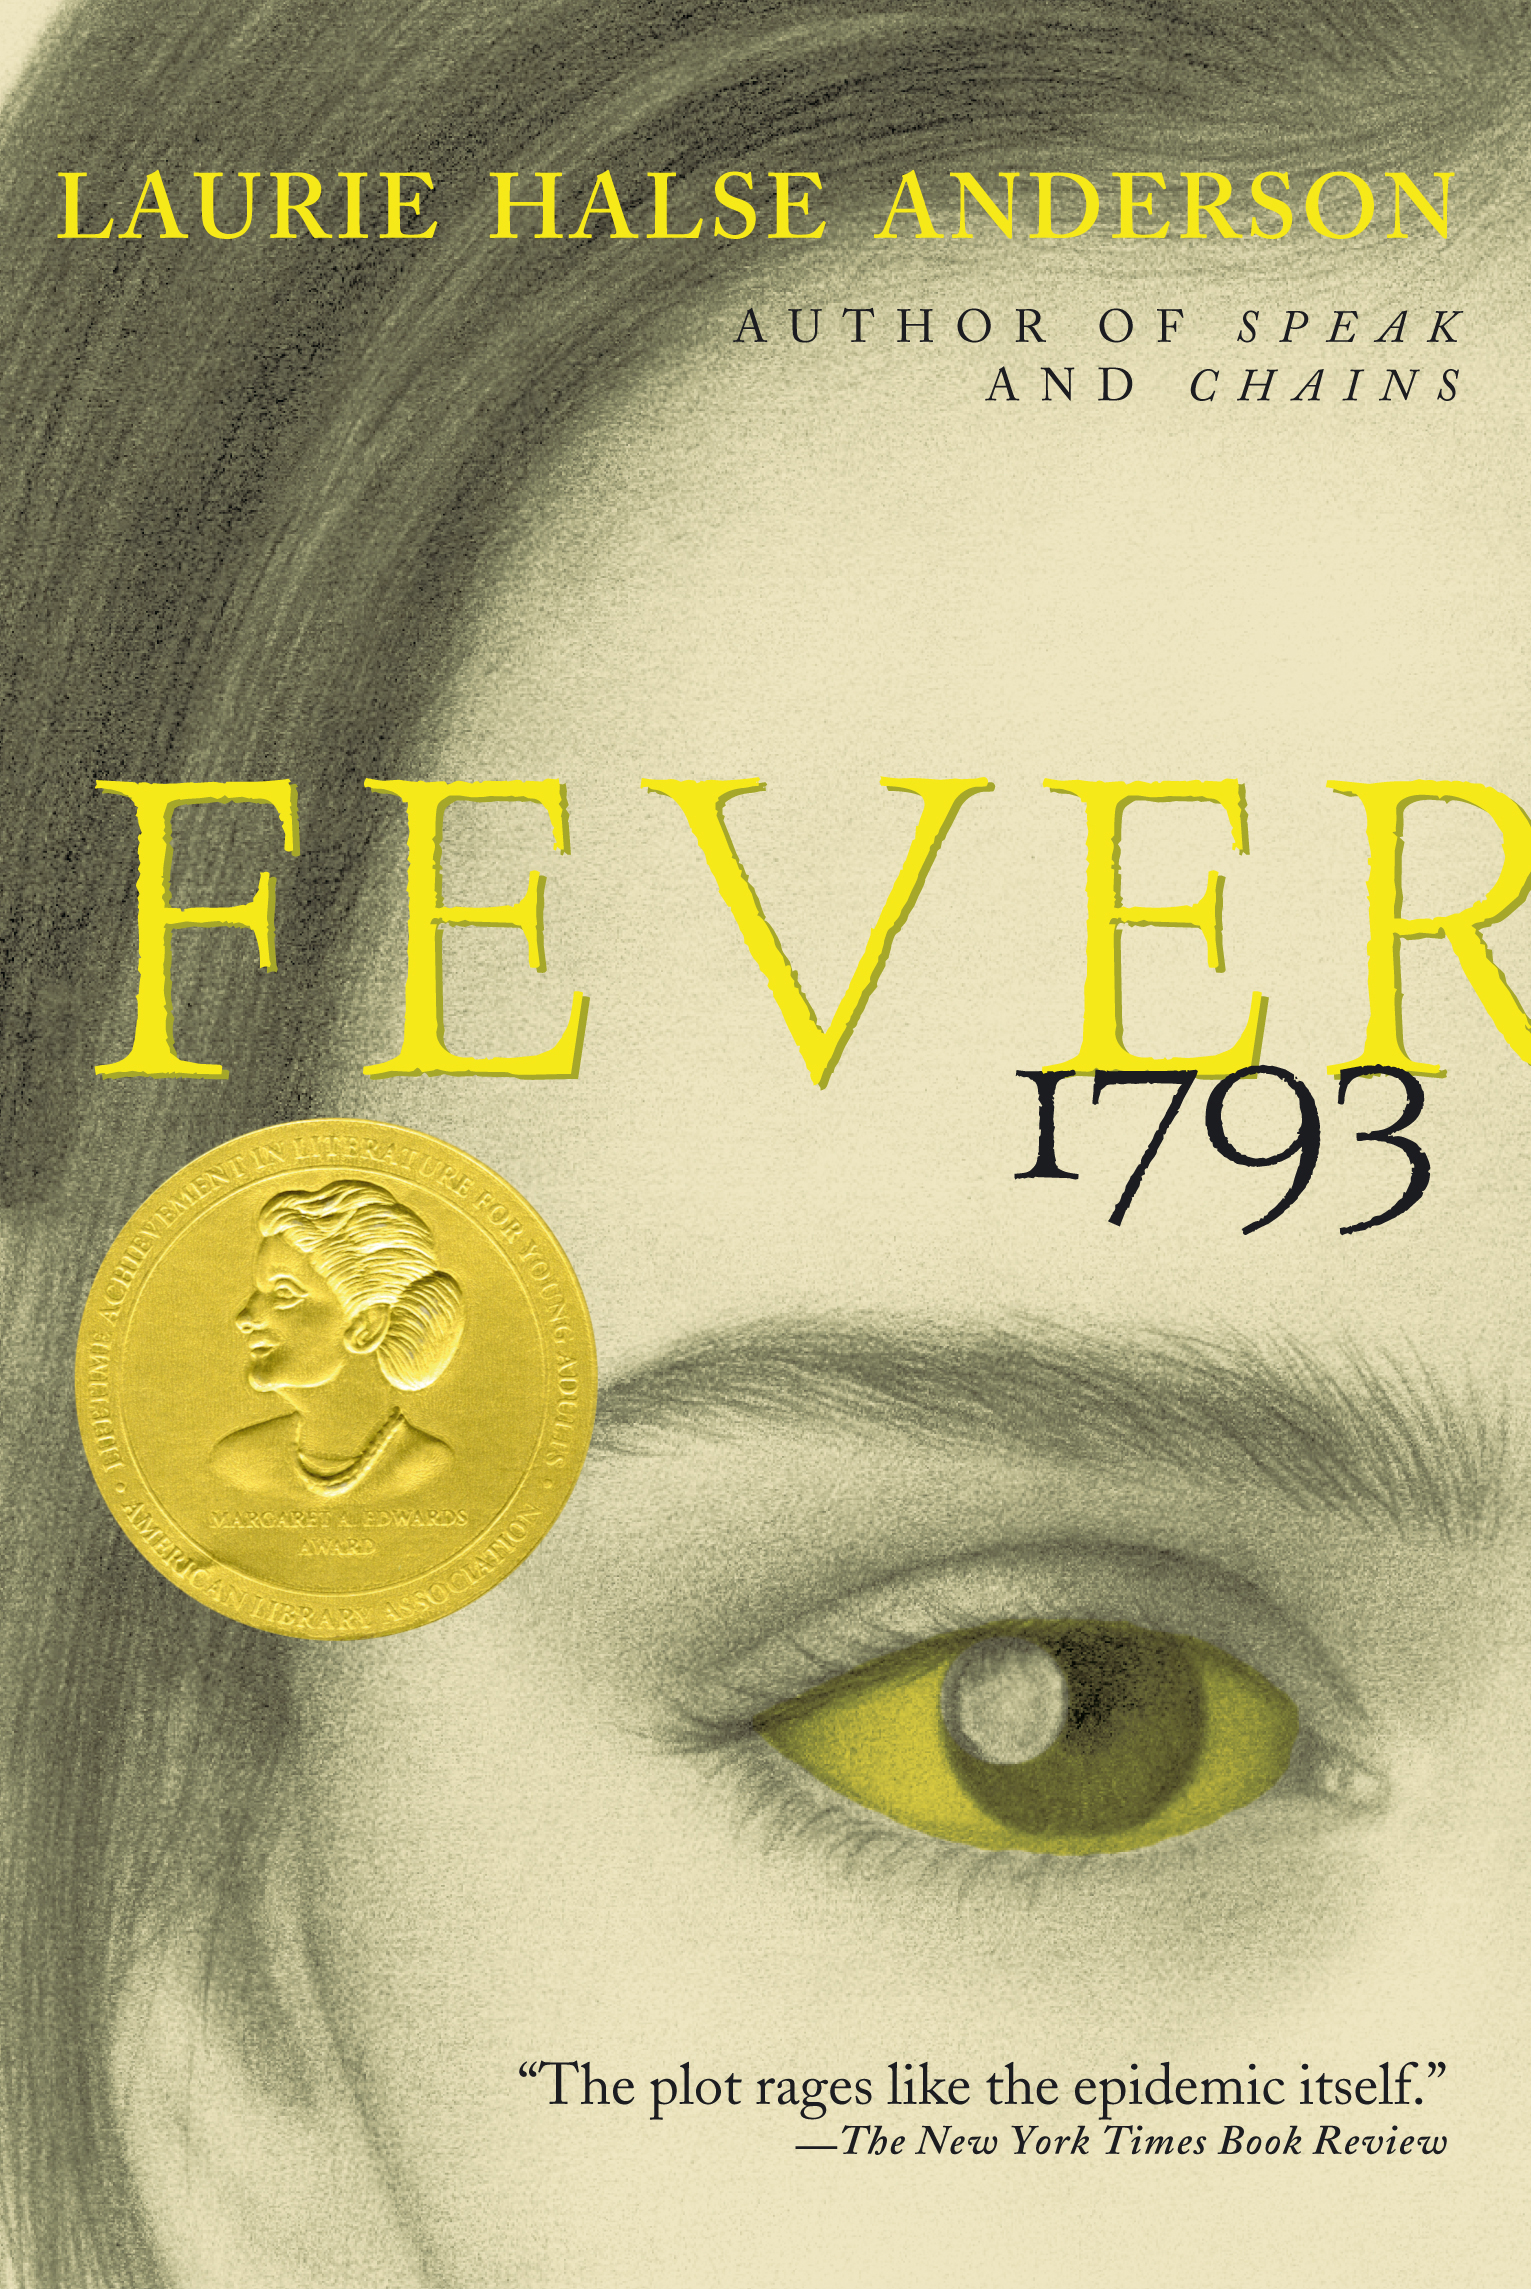 plot to fever 1793 The fever 1793 quiz quizzes | create a quiz progress: 1 of 21 questions  let's see if you can get all of the answers right where did the story predominantly take place dc new york philadelphia philedalphia bush hill bushel « previous.